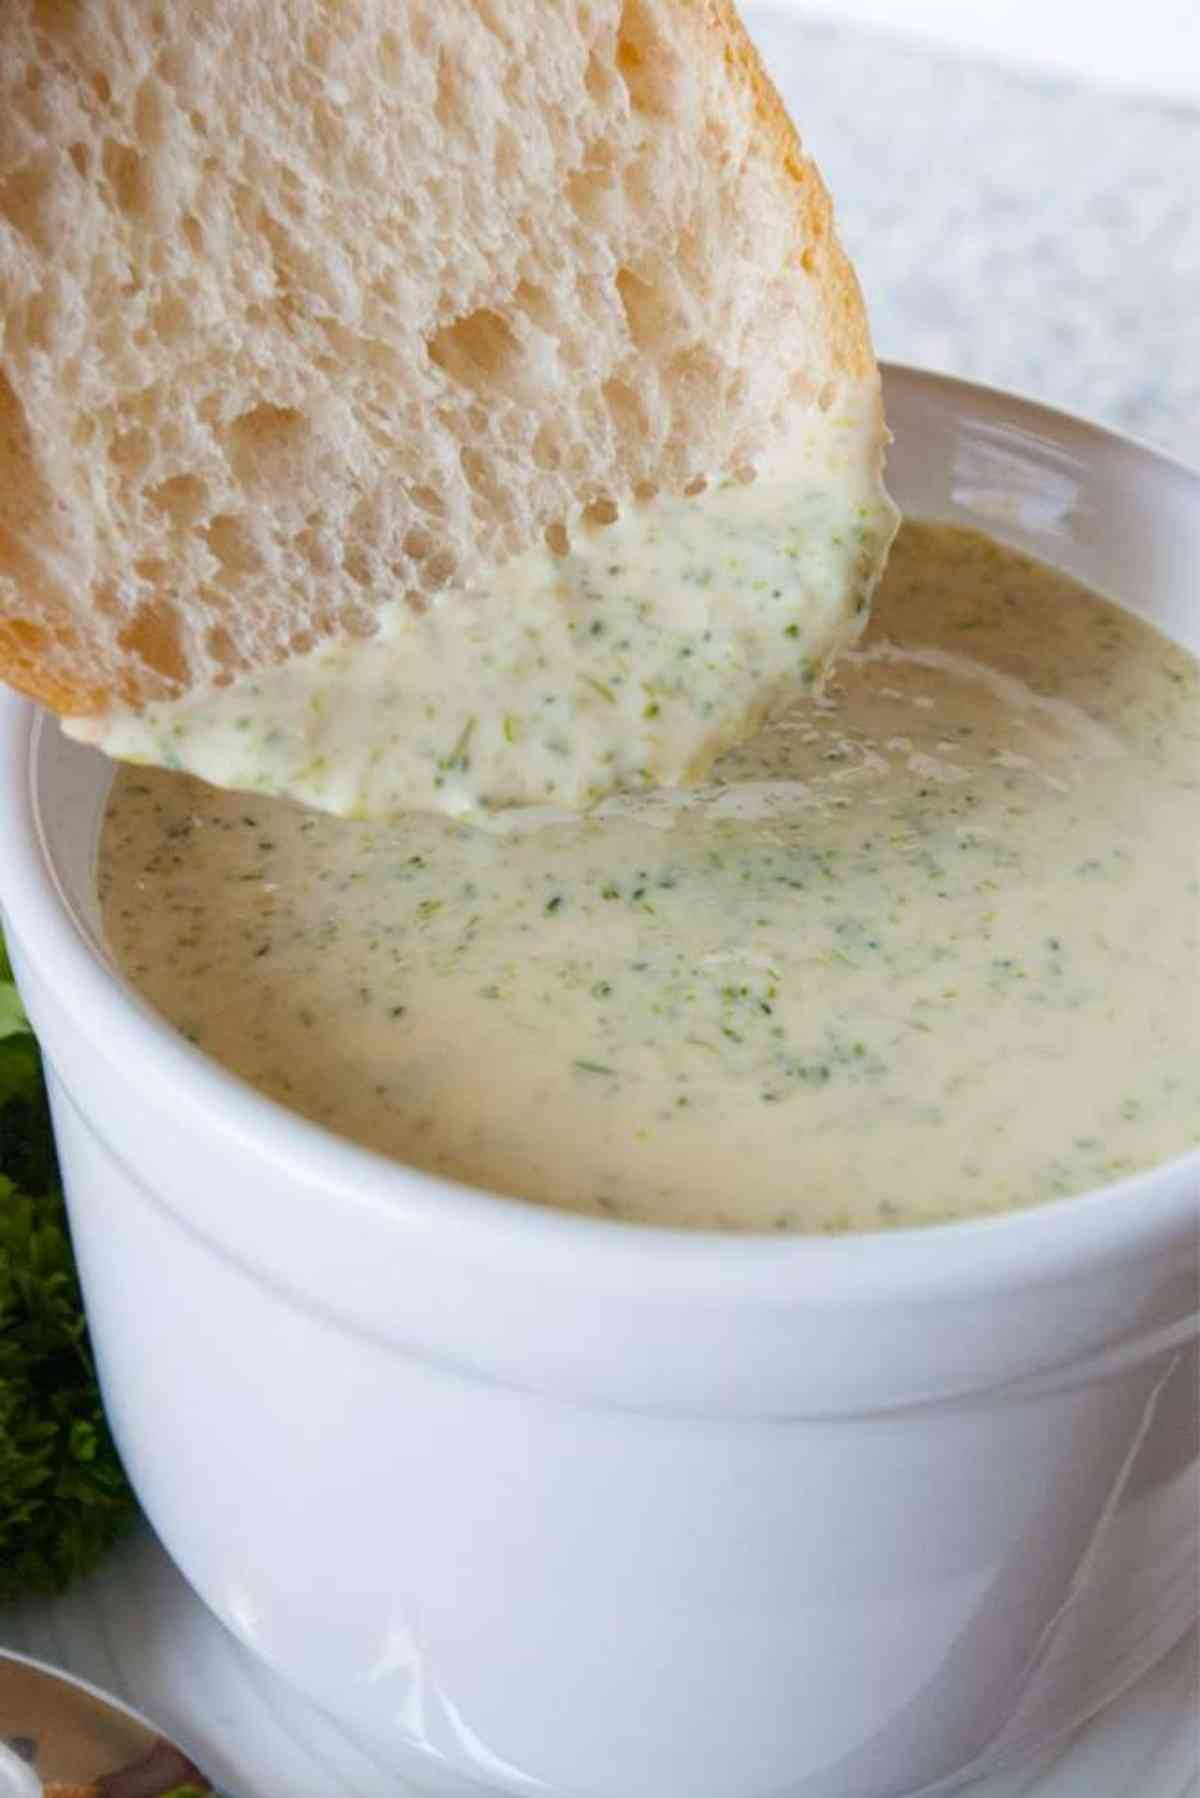 Slice of french bread being dipped into broccoli cheese soup.